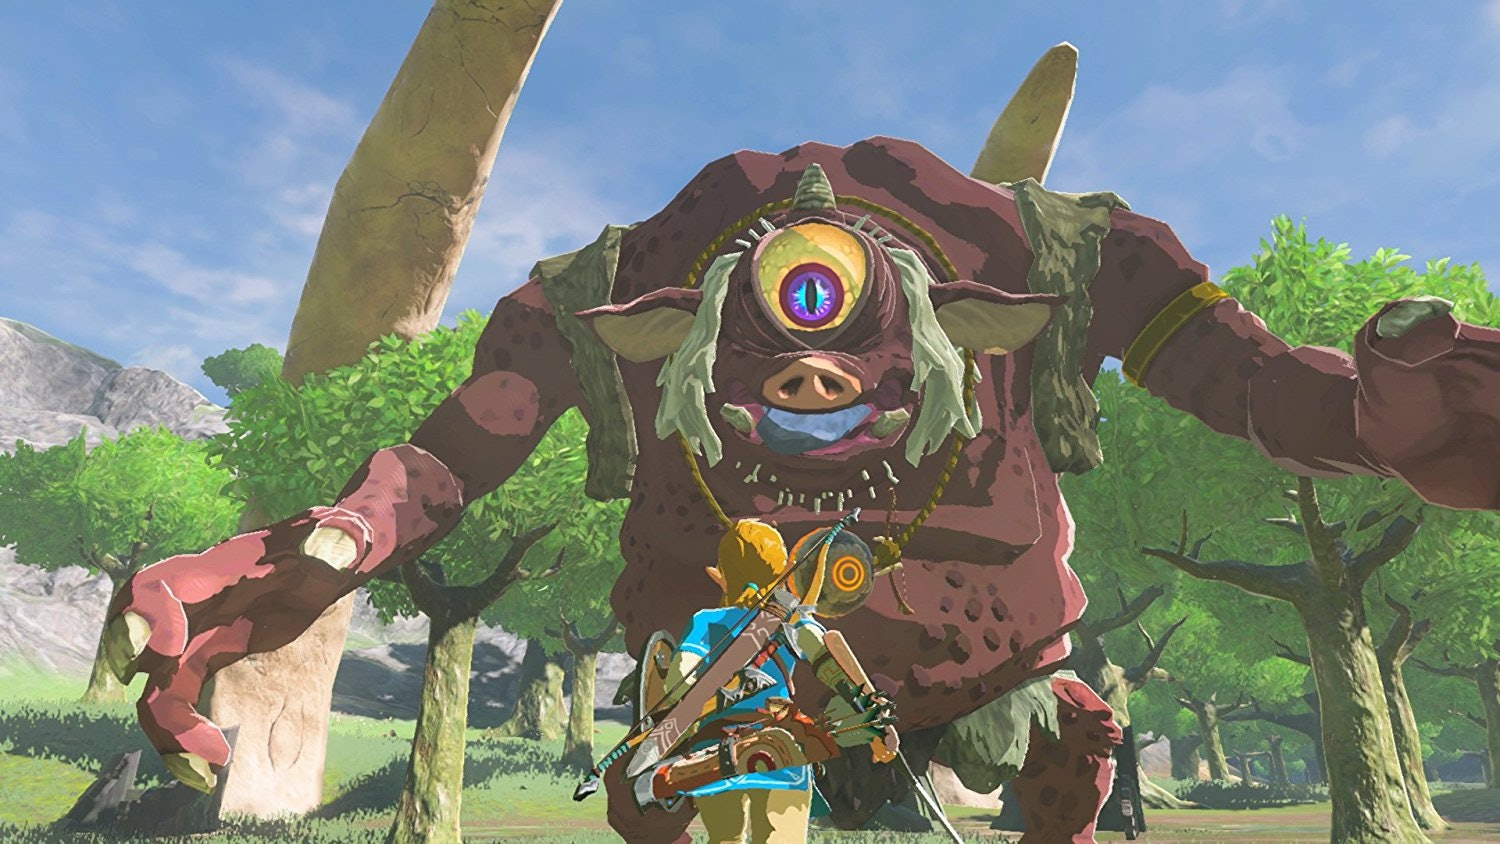 Zelda: Breath of the Wild' Hinox Guide, Tips and Tricks: How